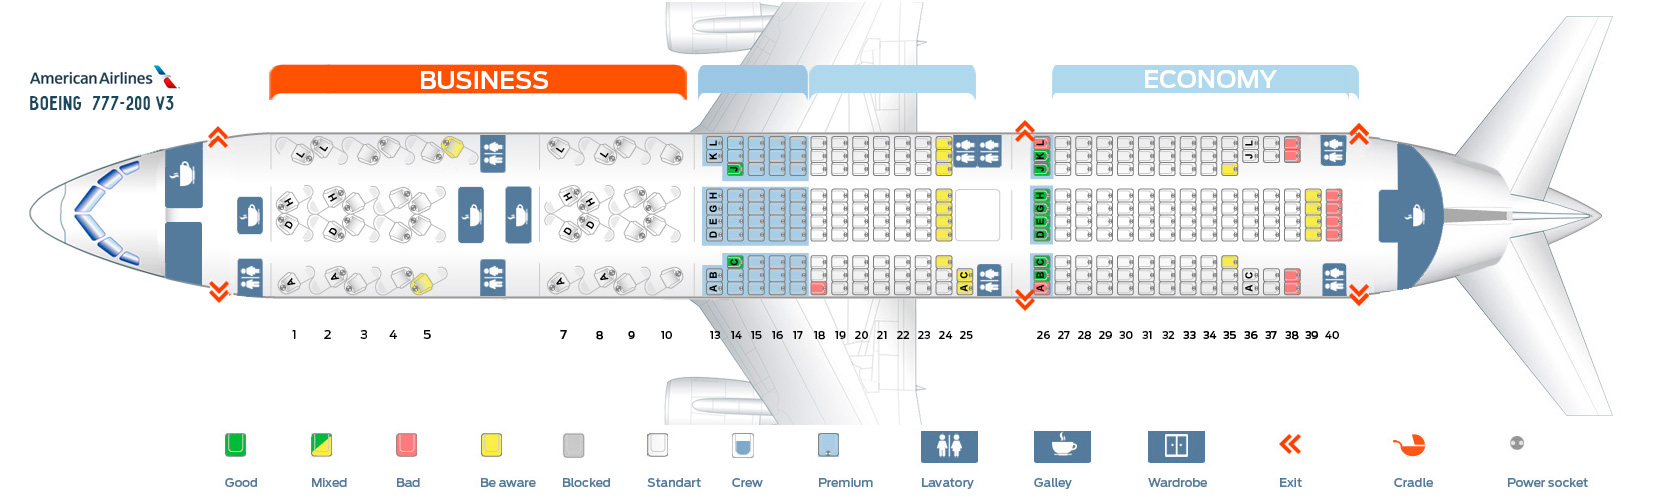 boeing 777 200 seat map with Seat Map Boeing 777 200 American Airlines Best Seats In The Plane on Watch together with Boeing 777 200 Singapore Airlines Photos And Description Of The Plane likewise Watch also Fleet Information also Klm royal dutch airlines seating maps.